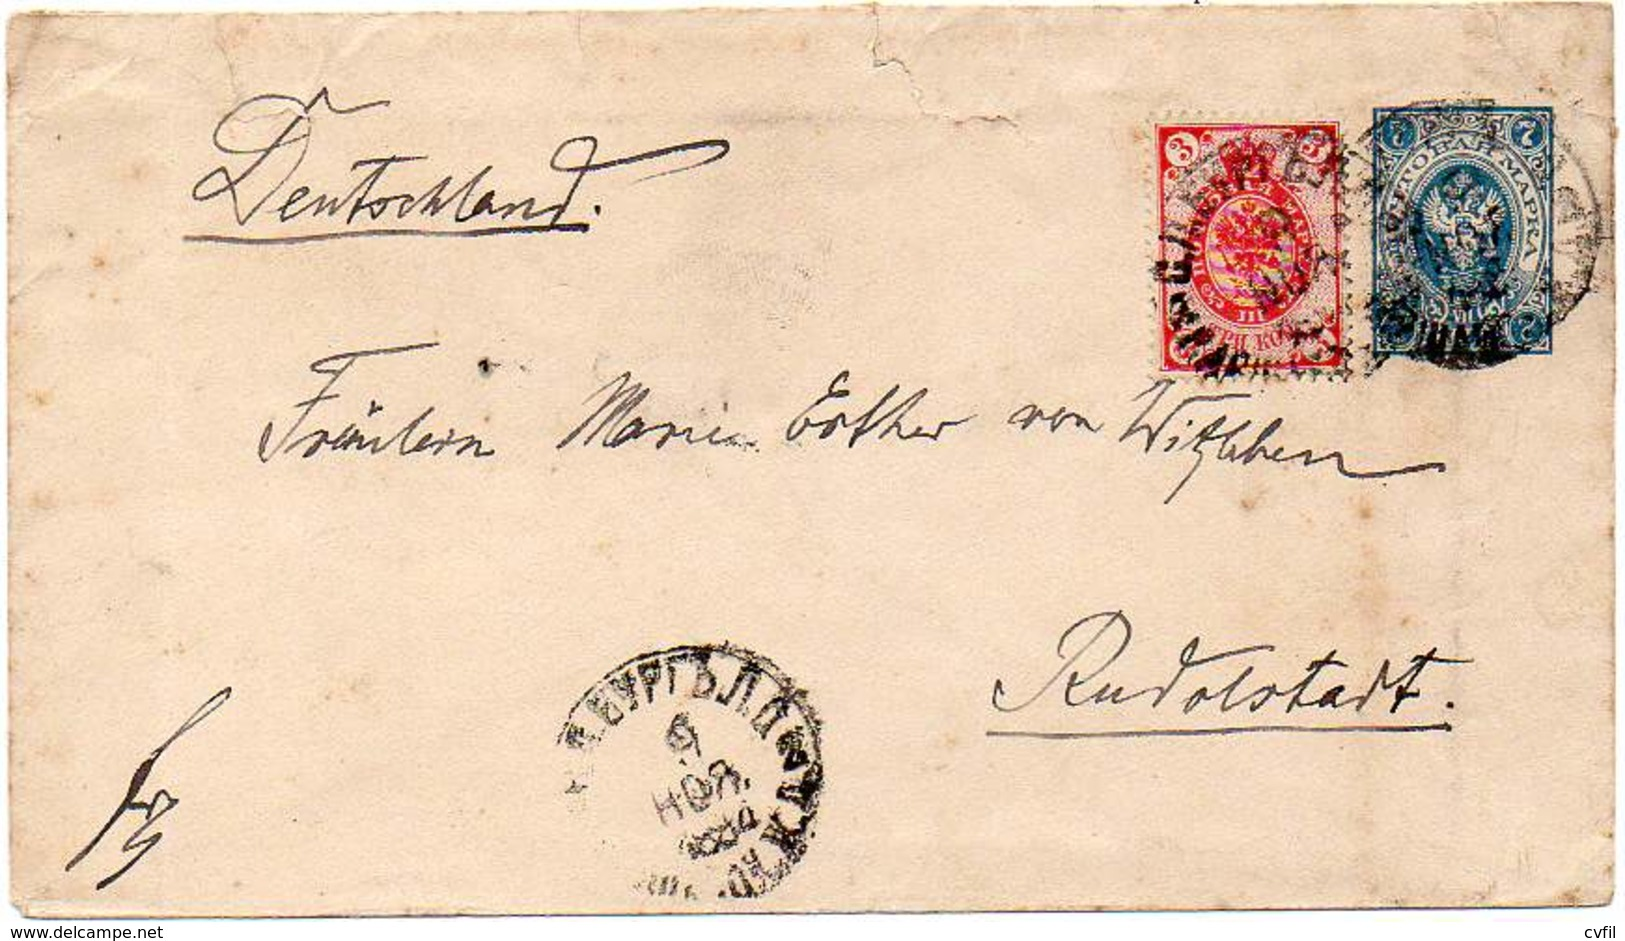 RUSSIA 1894 - ENTIRE ENVELOPE Of 7 KOPECS With Additional Postage From St. Petersburg To Rudolstadt, Germany - 1857-1916 Empire